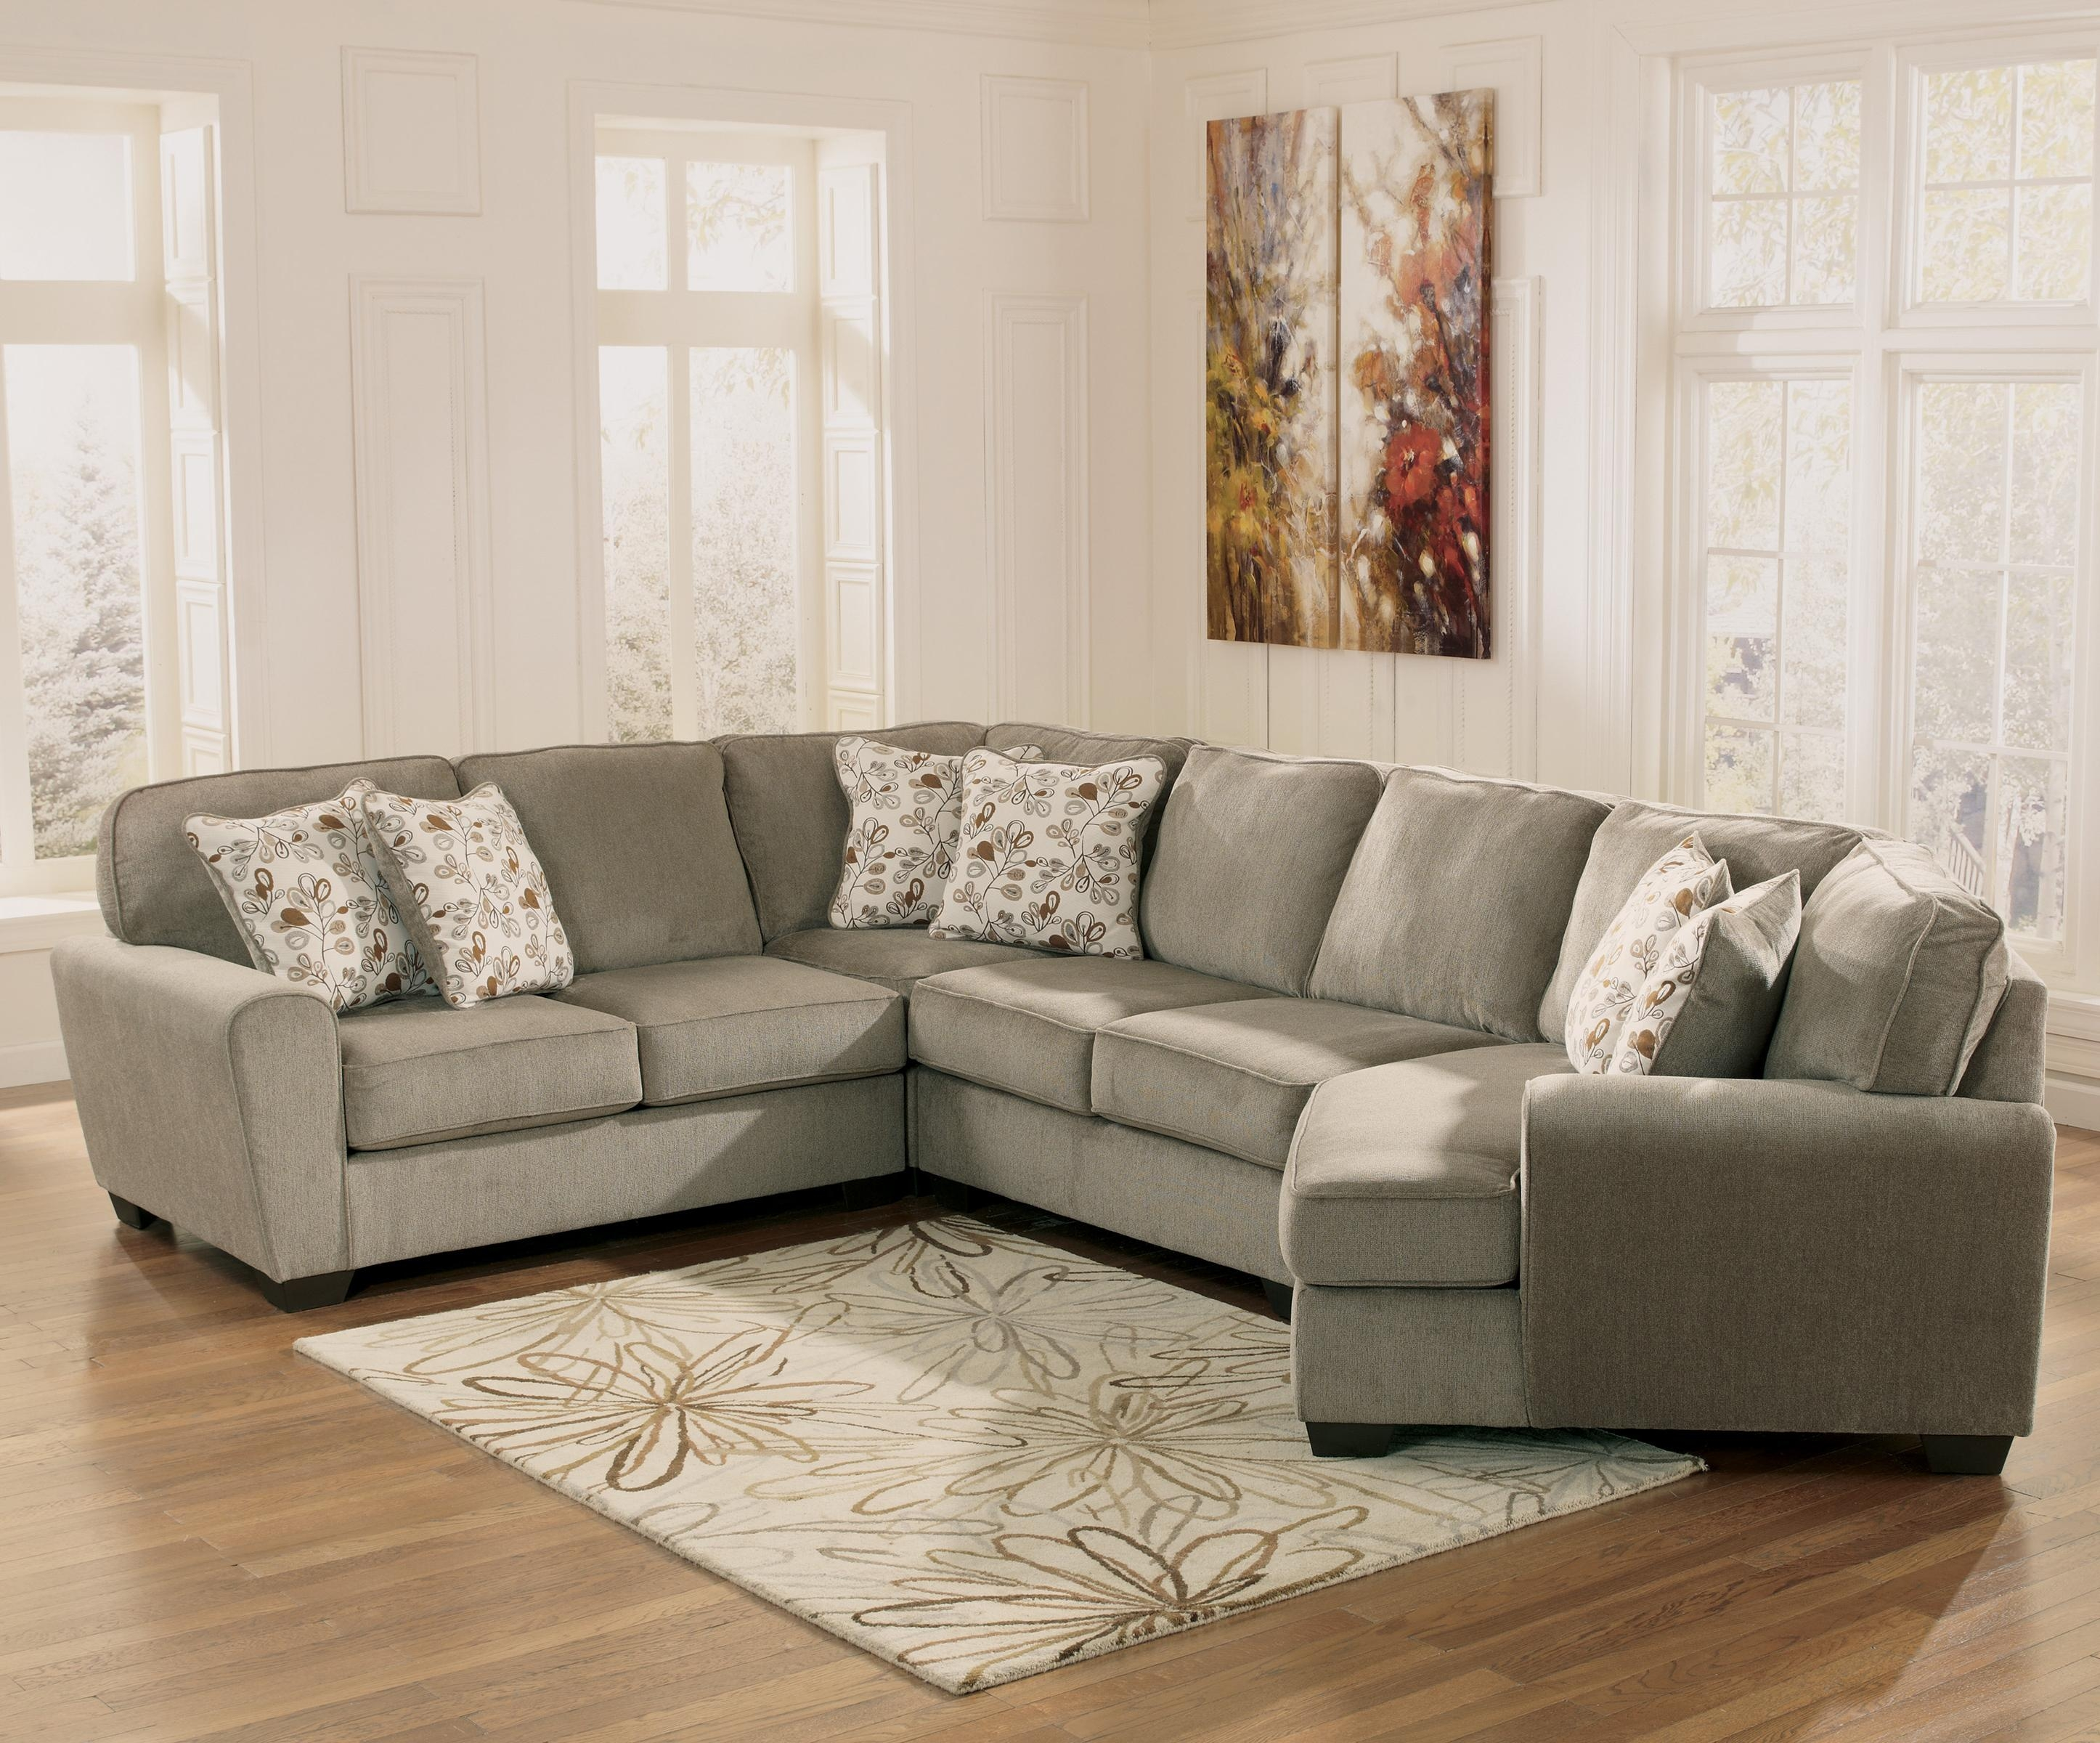 Patina 4 Piece Small Sectional With Right Cuddler Rotmans Sofa With Regard To Cuddler Sectional Sofa (#10 of 12)